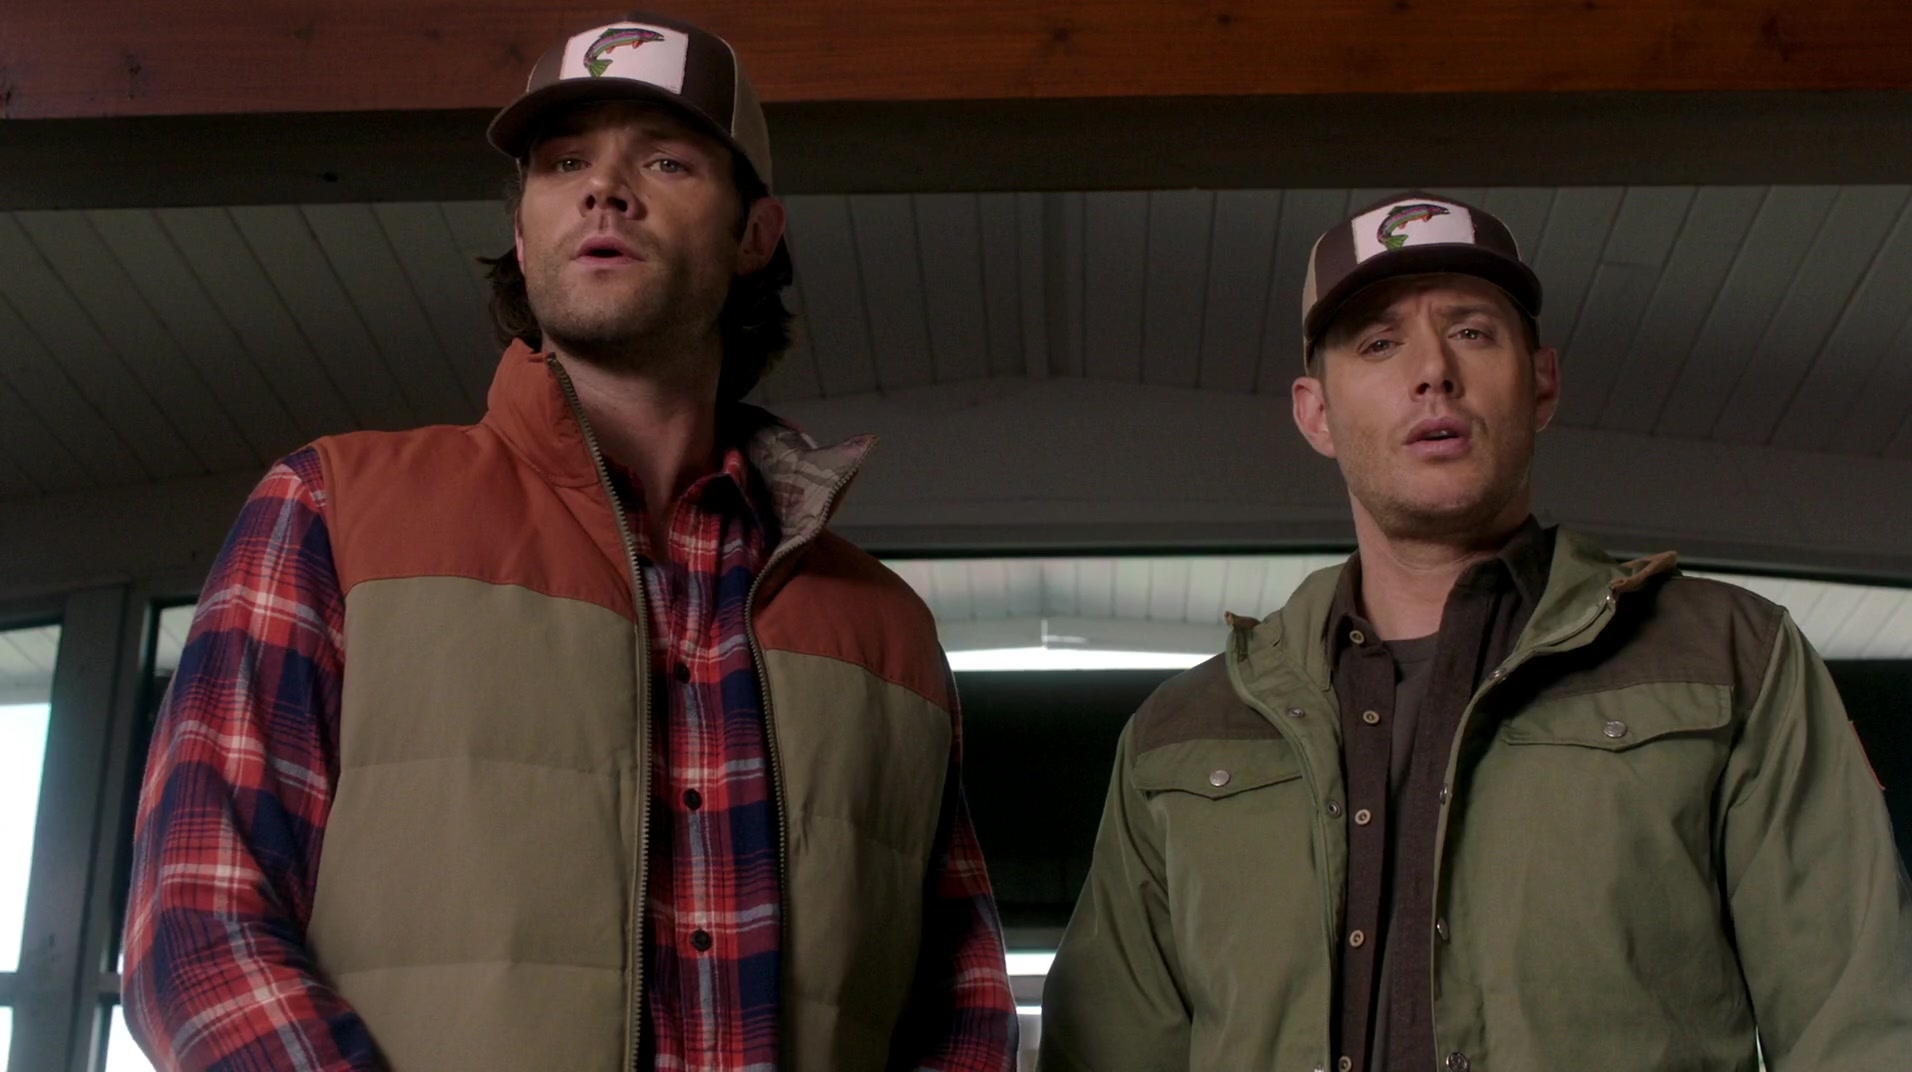 https://thewinchesterfamilybusiness.com/images/CaptionThis/SPN_15x05.jpg